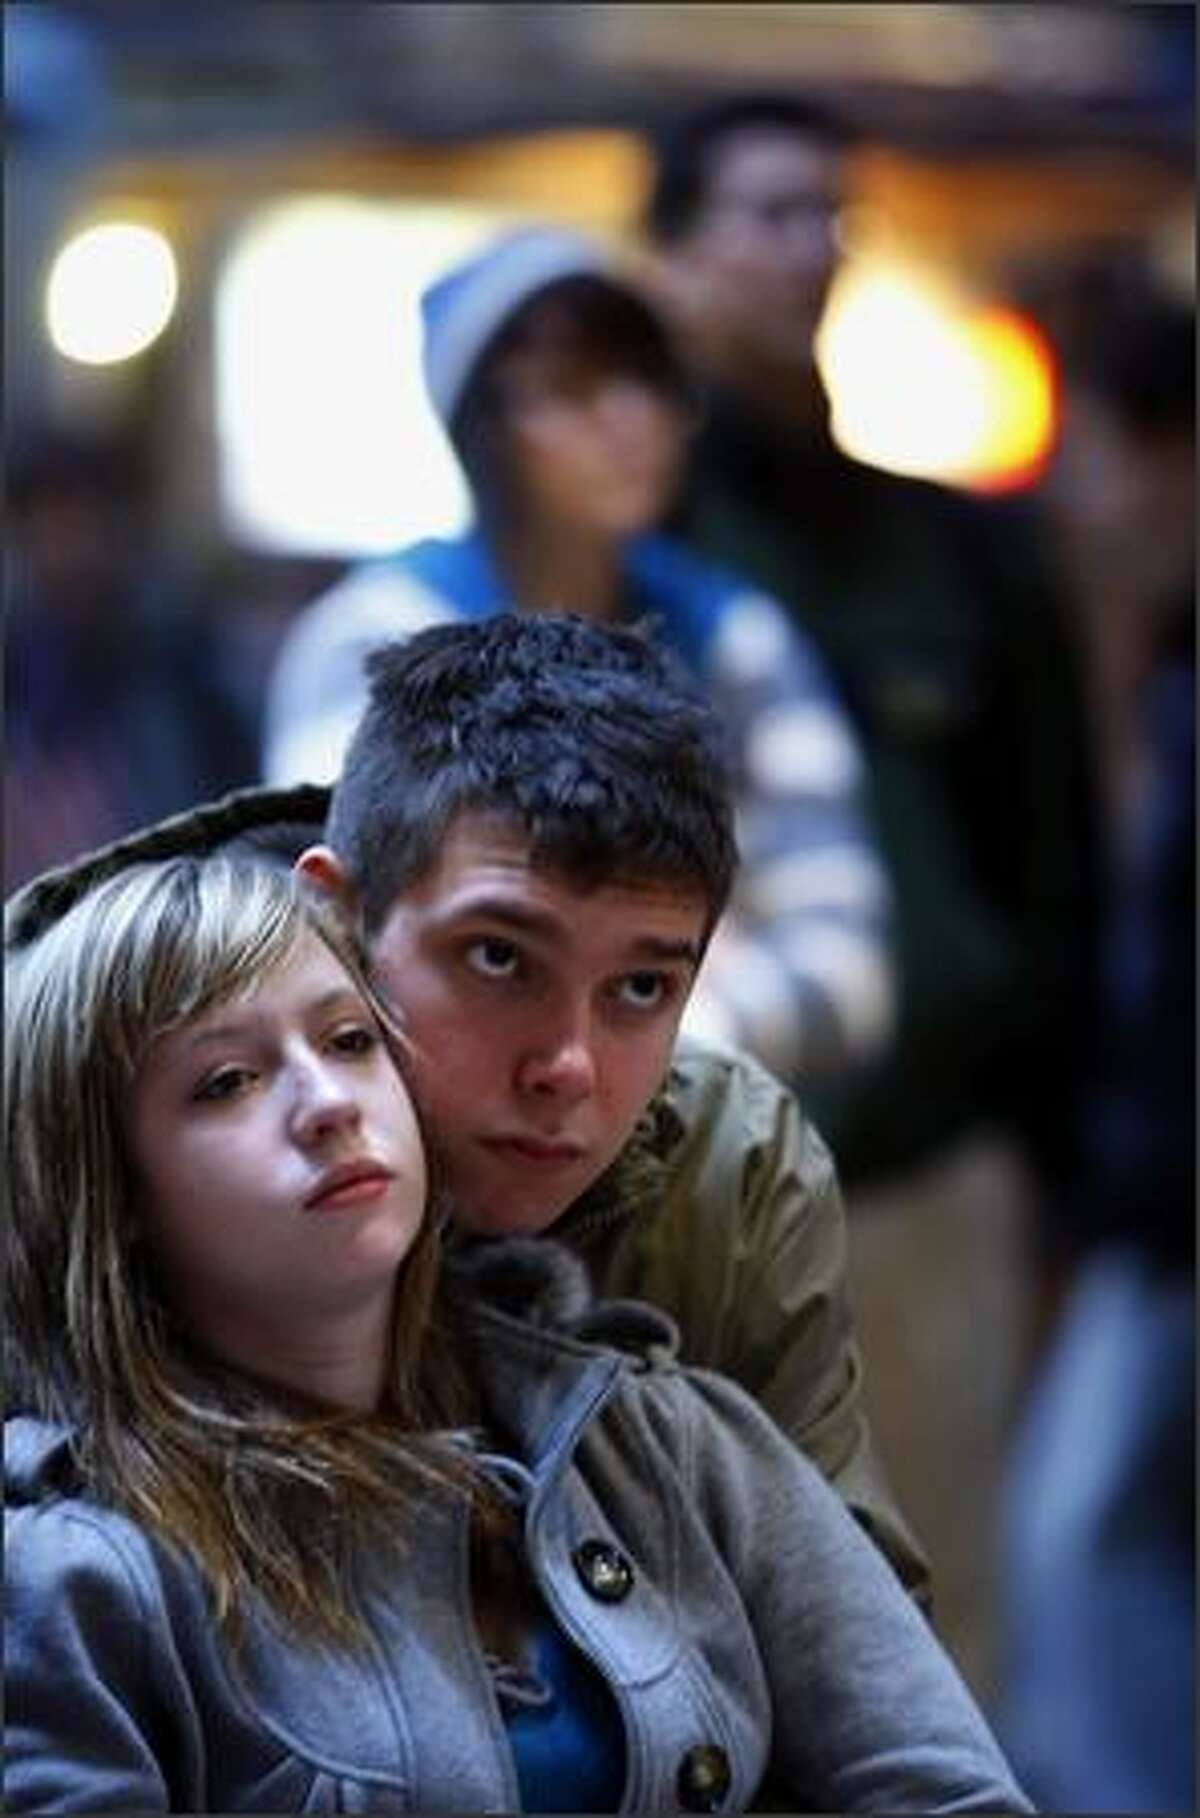 Rose Parsons and Josh Carvajal, both 17 of Seattle, watch a live telecast of Barack Obama's inauguration ceremony with a crowd at Center House in Seattle Center on Tuesday.